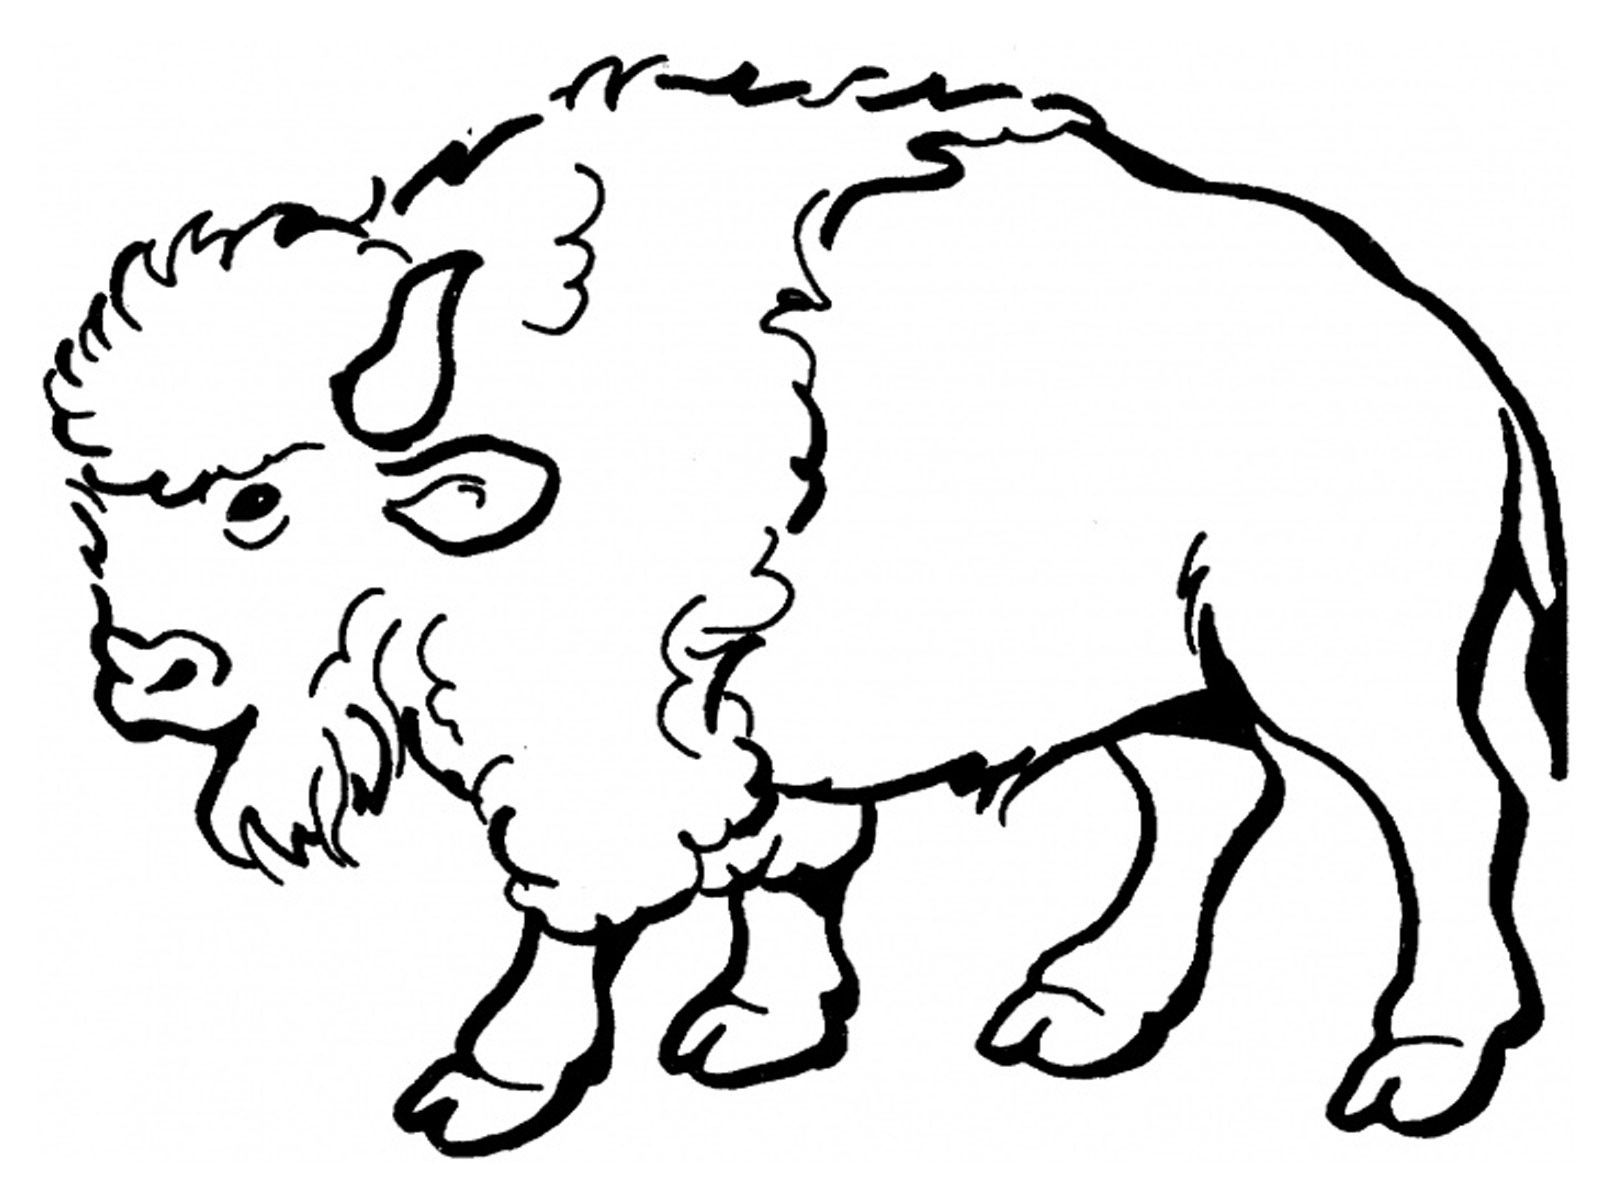 Bison Coloring Pages Animal Coloring Pages Coloring Pages Art